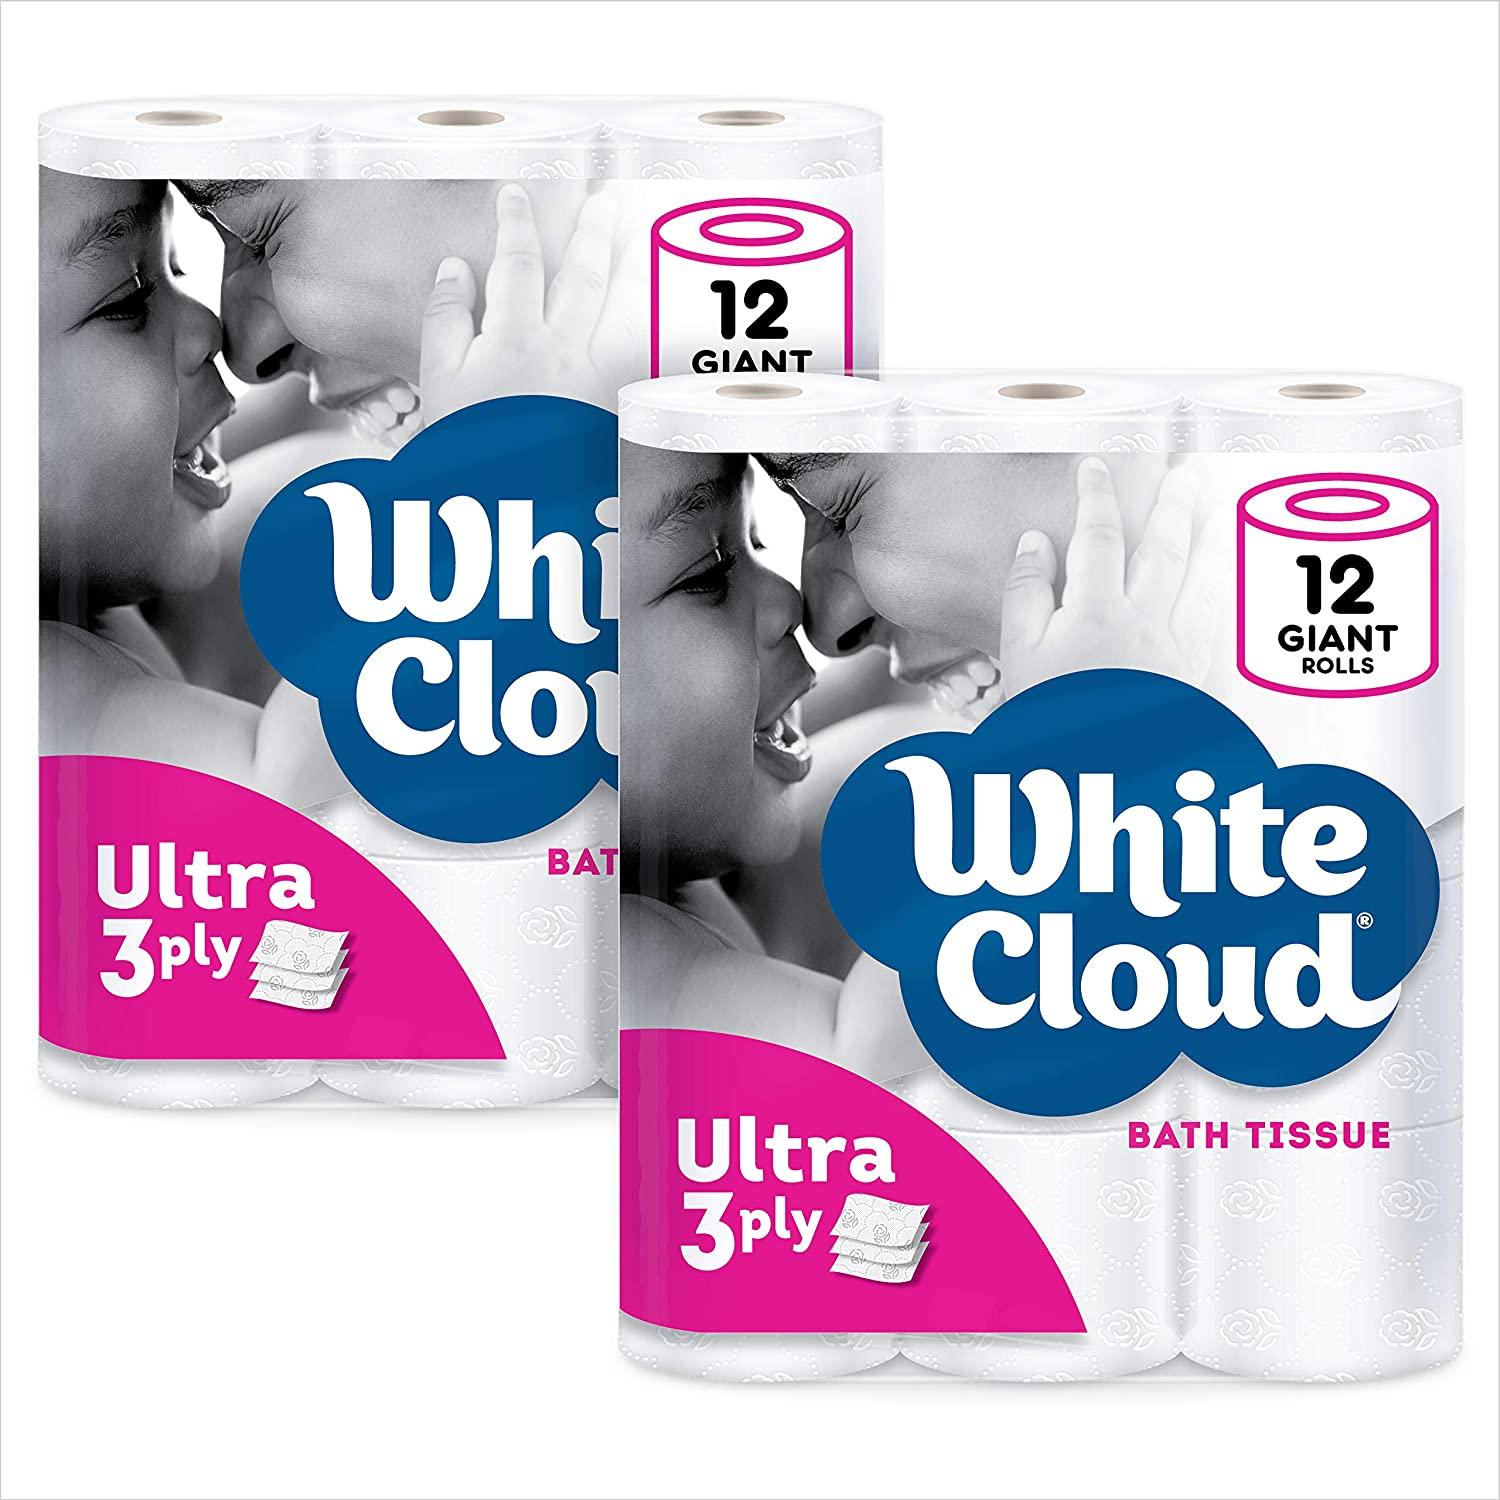 White Cloud Ultra Soft & Thick 3-Ply Toilet Paper – 24 Total Giant Rolls, 231 Sheets per Roll, 12 Rolls (Pack of 2) : Health & Household